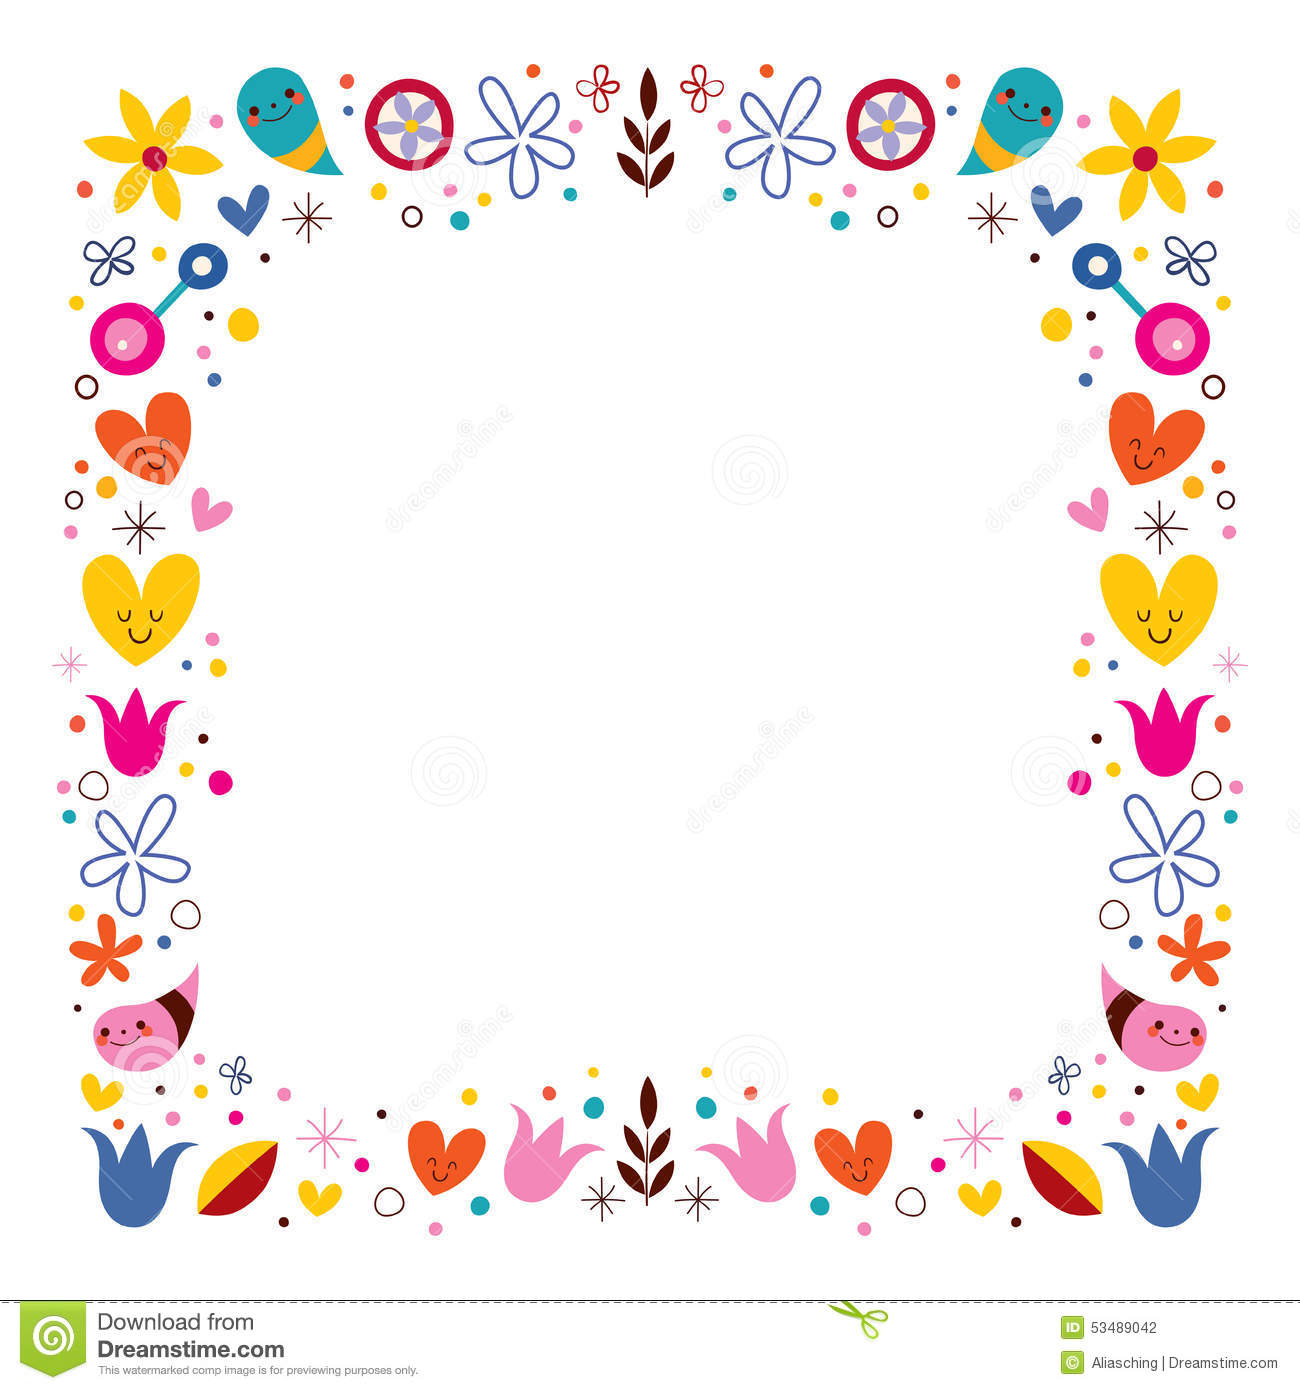 Nature Love Harmony Flowers Abstract Art Vector Frame